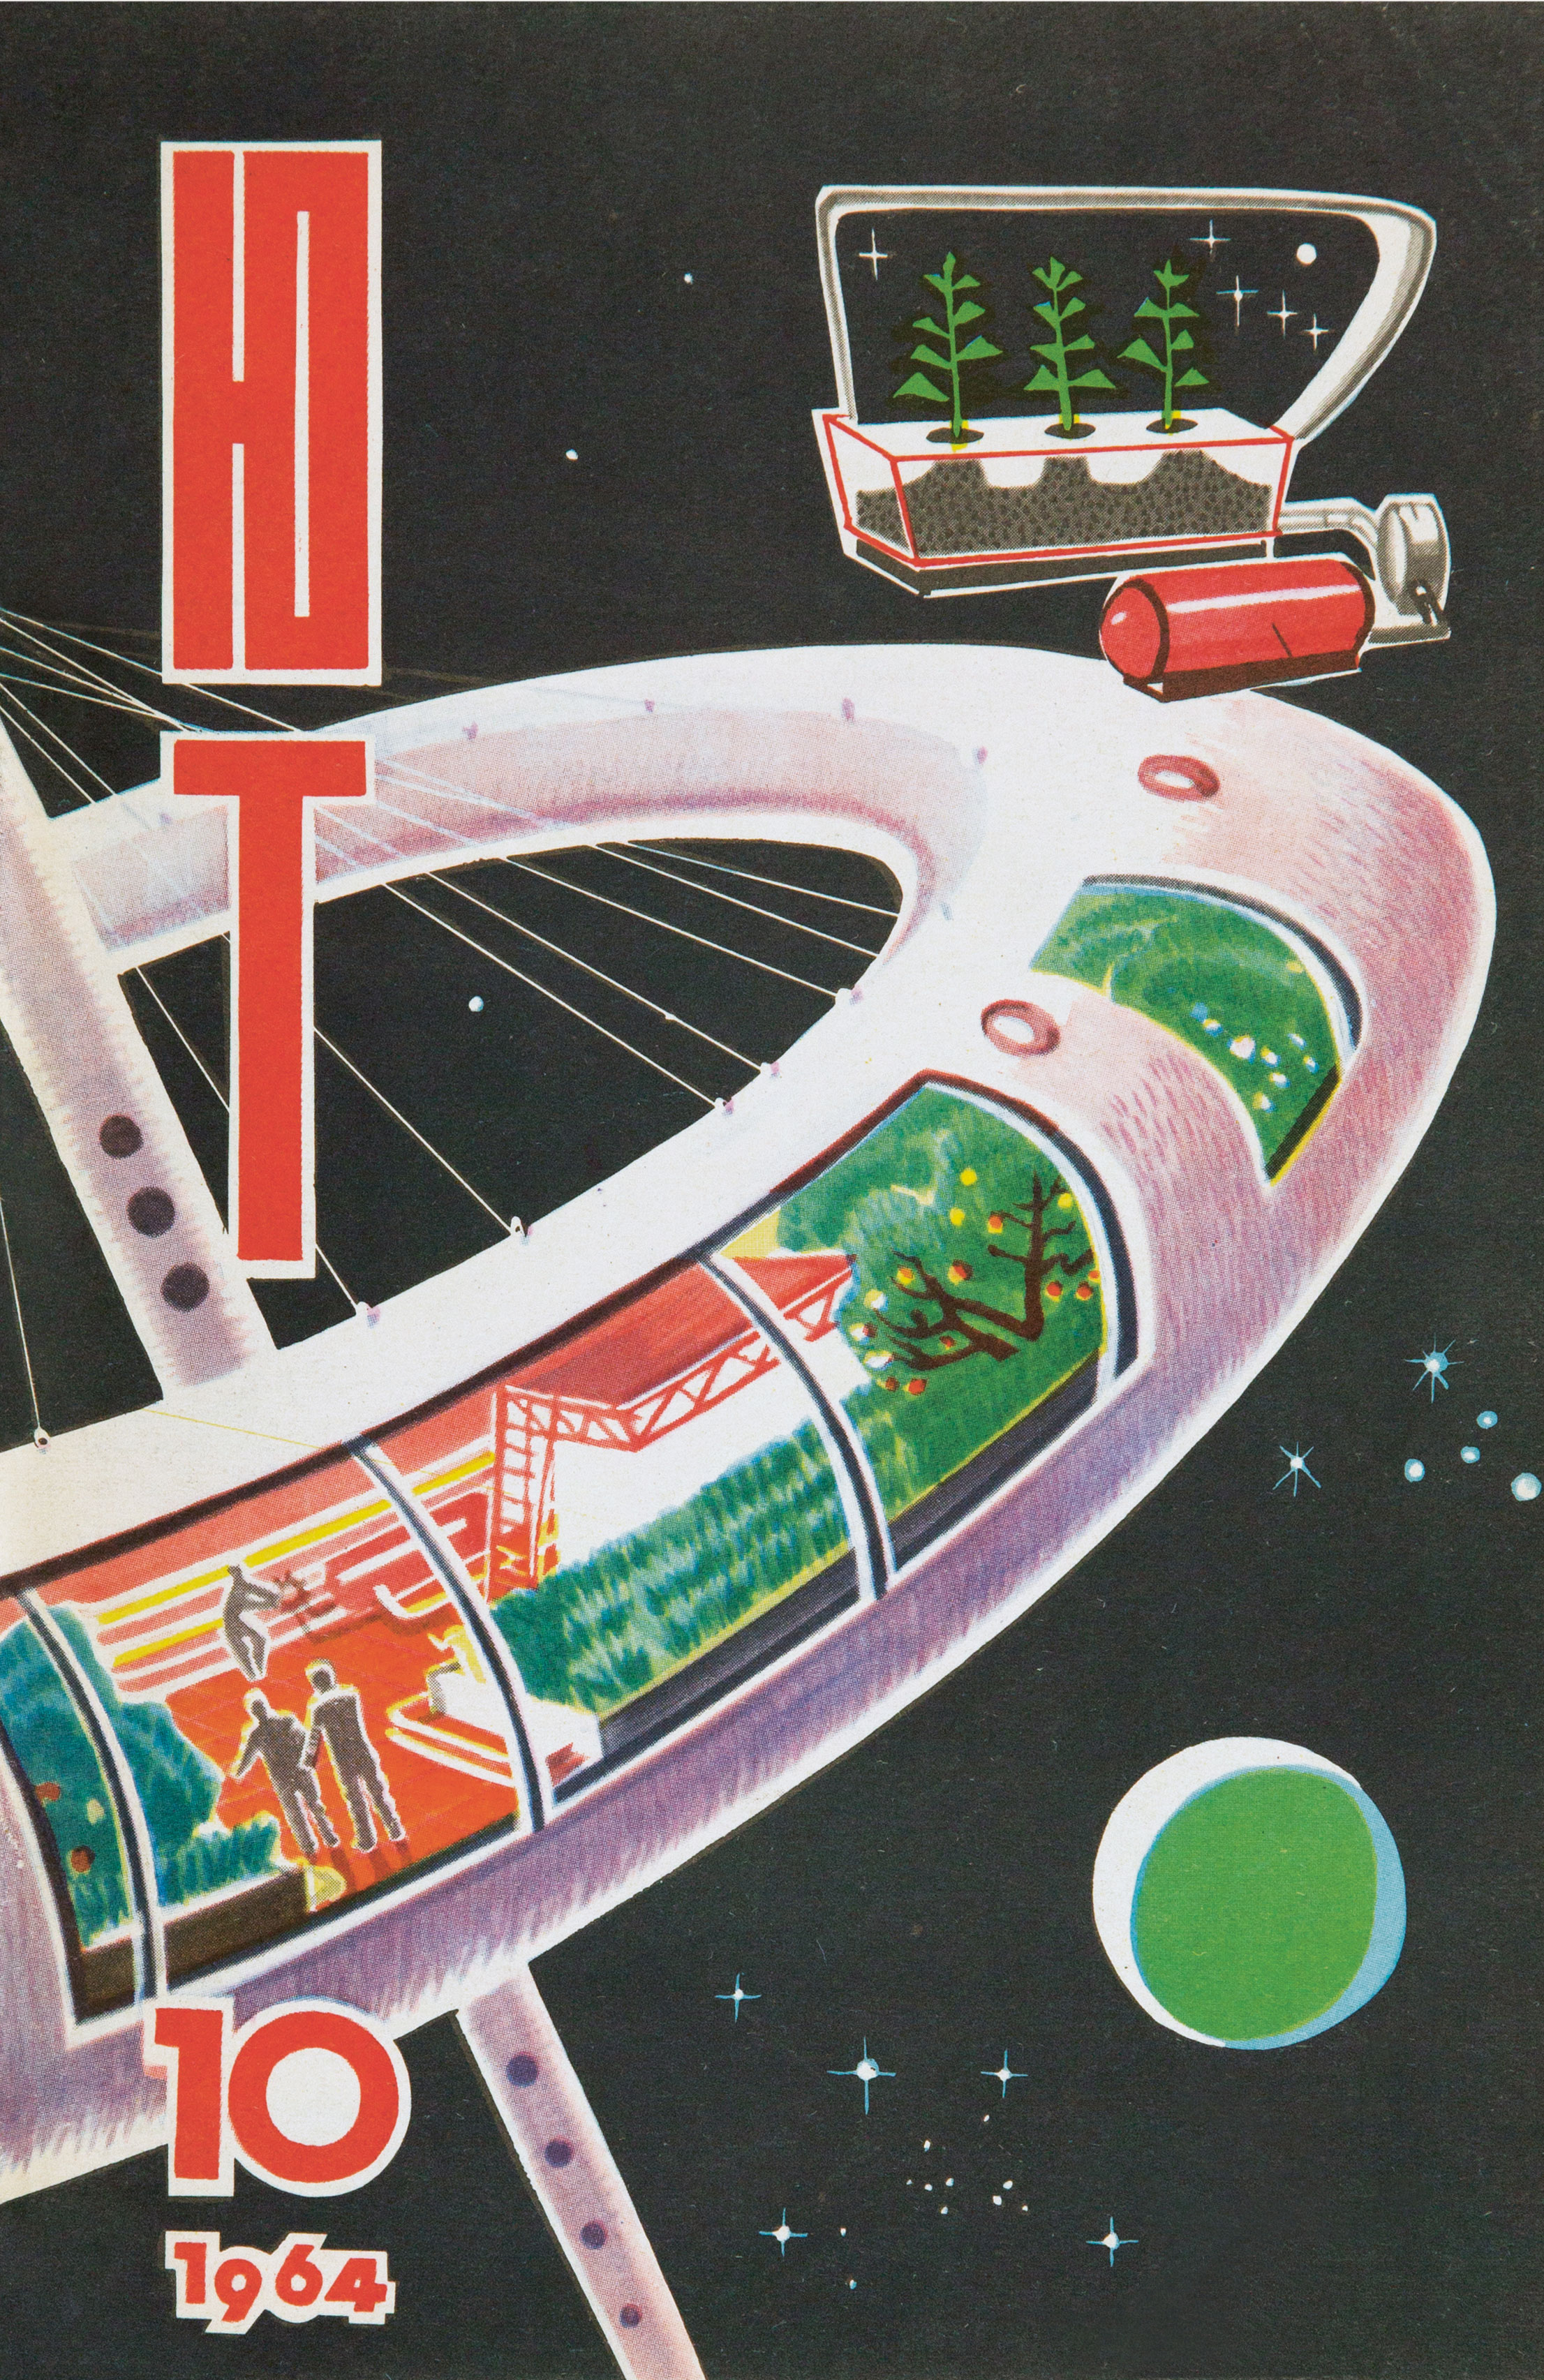 Young Technician, issue 10, 1964, illustration by R. Avotin for the article 'Space Greenhouse', which hypothesizes on the creation of an environment suitable for growing plants in space.